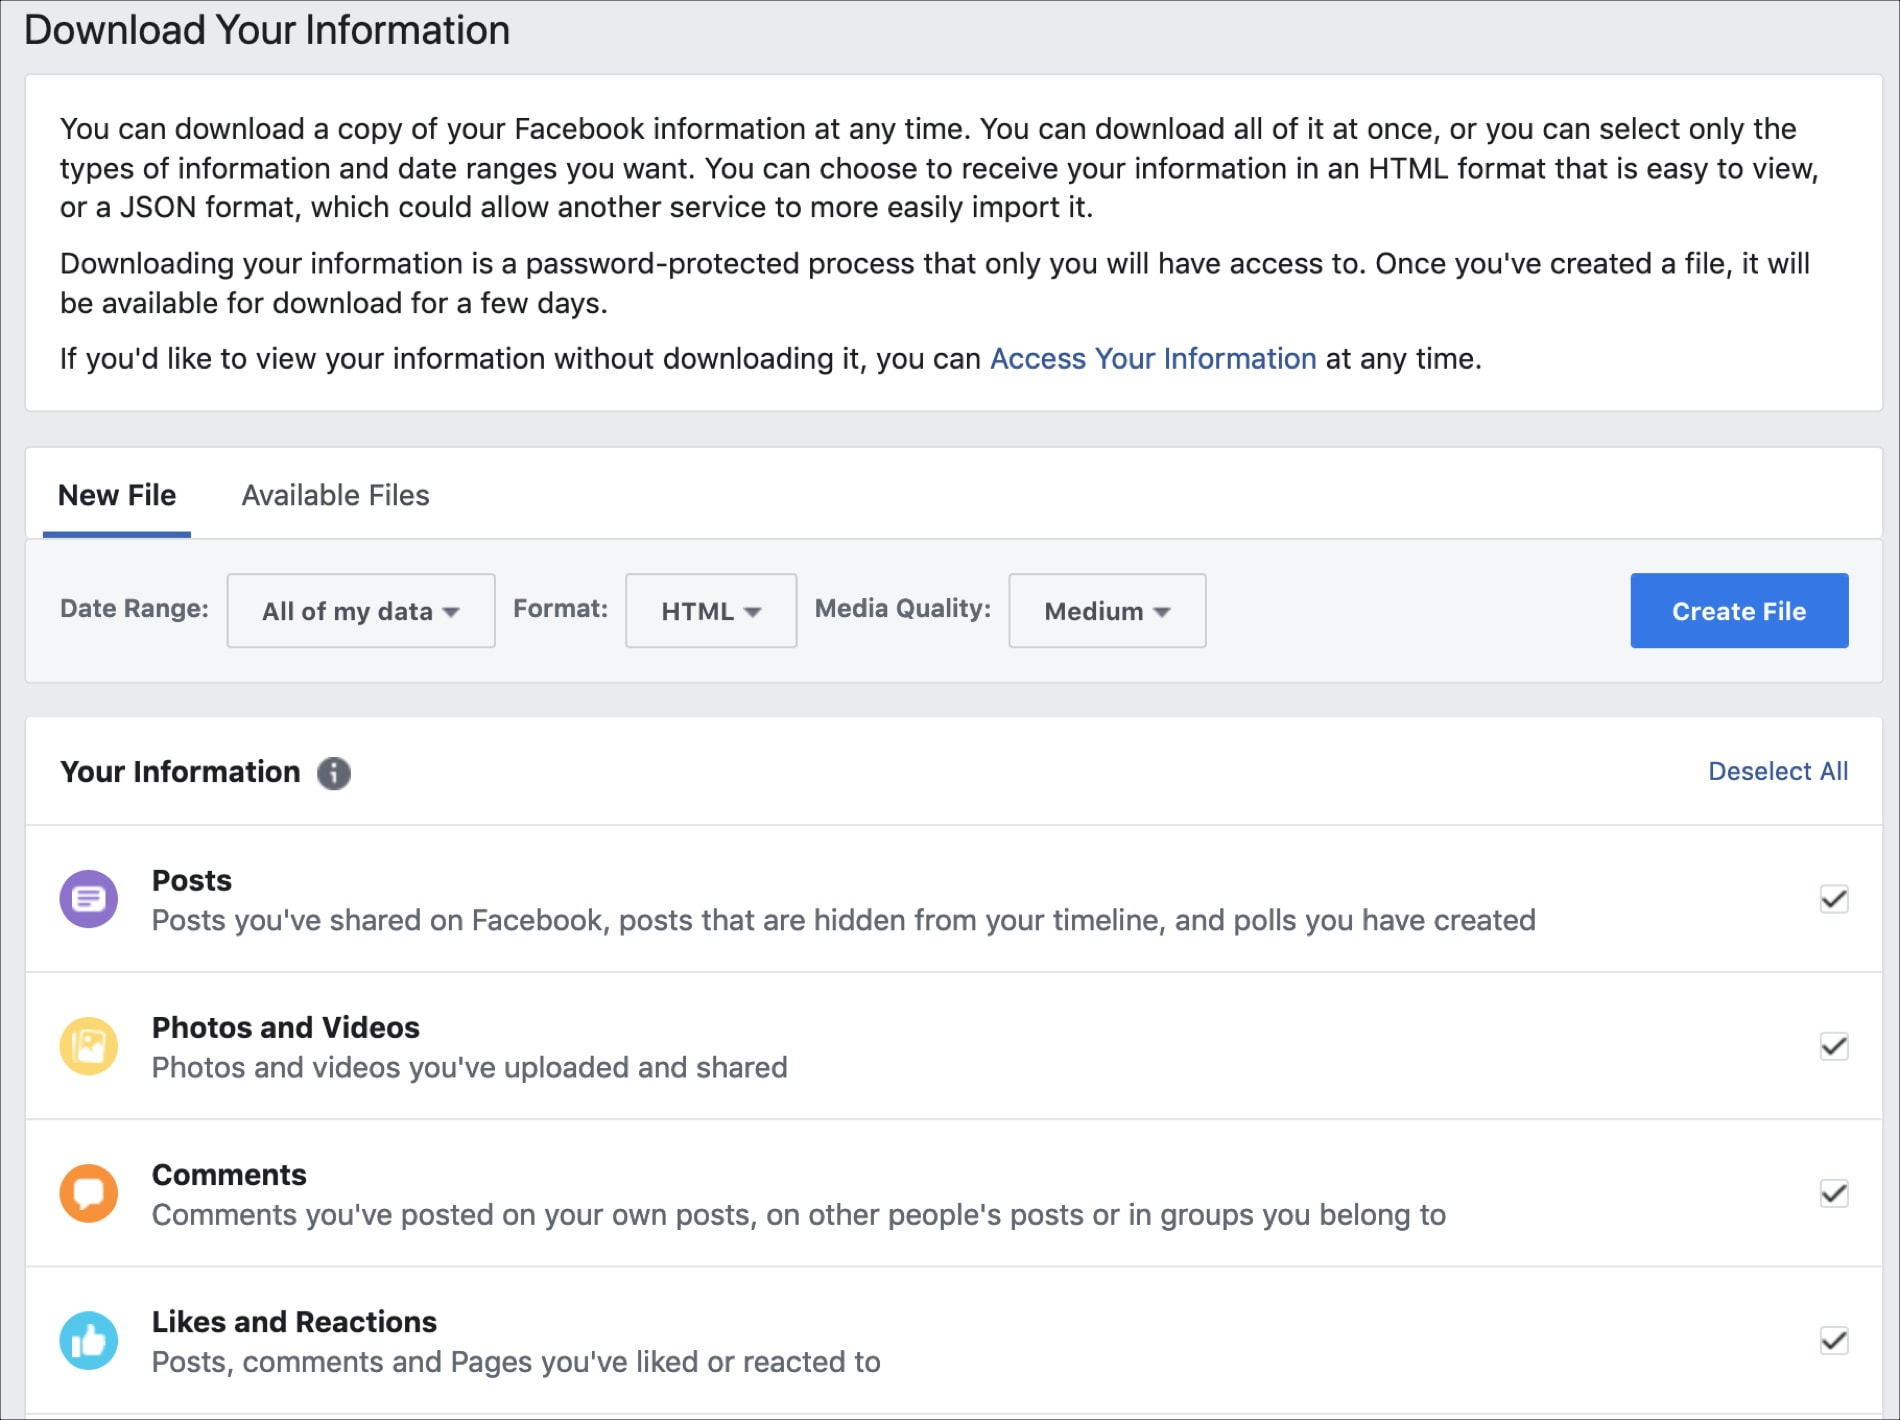 How to download the entire archive of your Facebook account